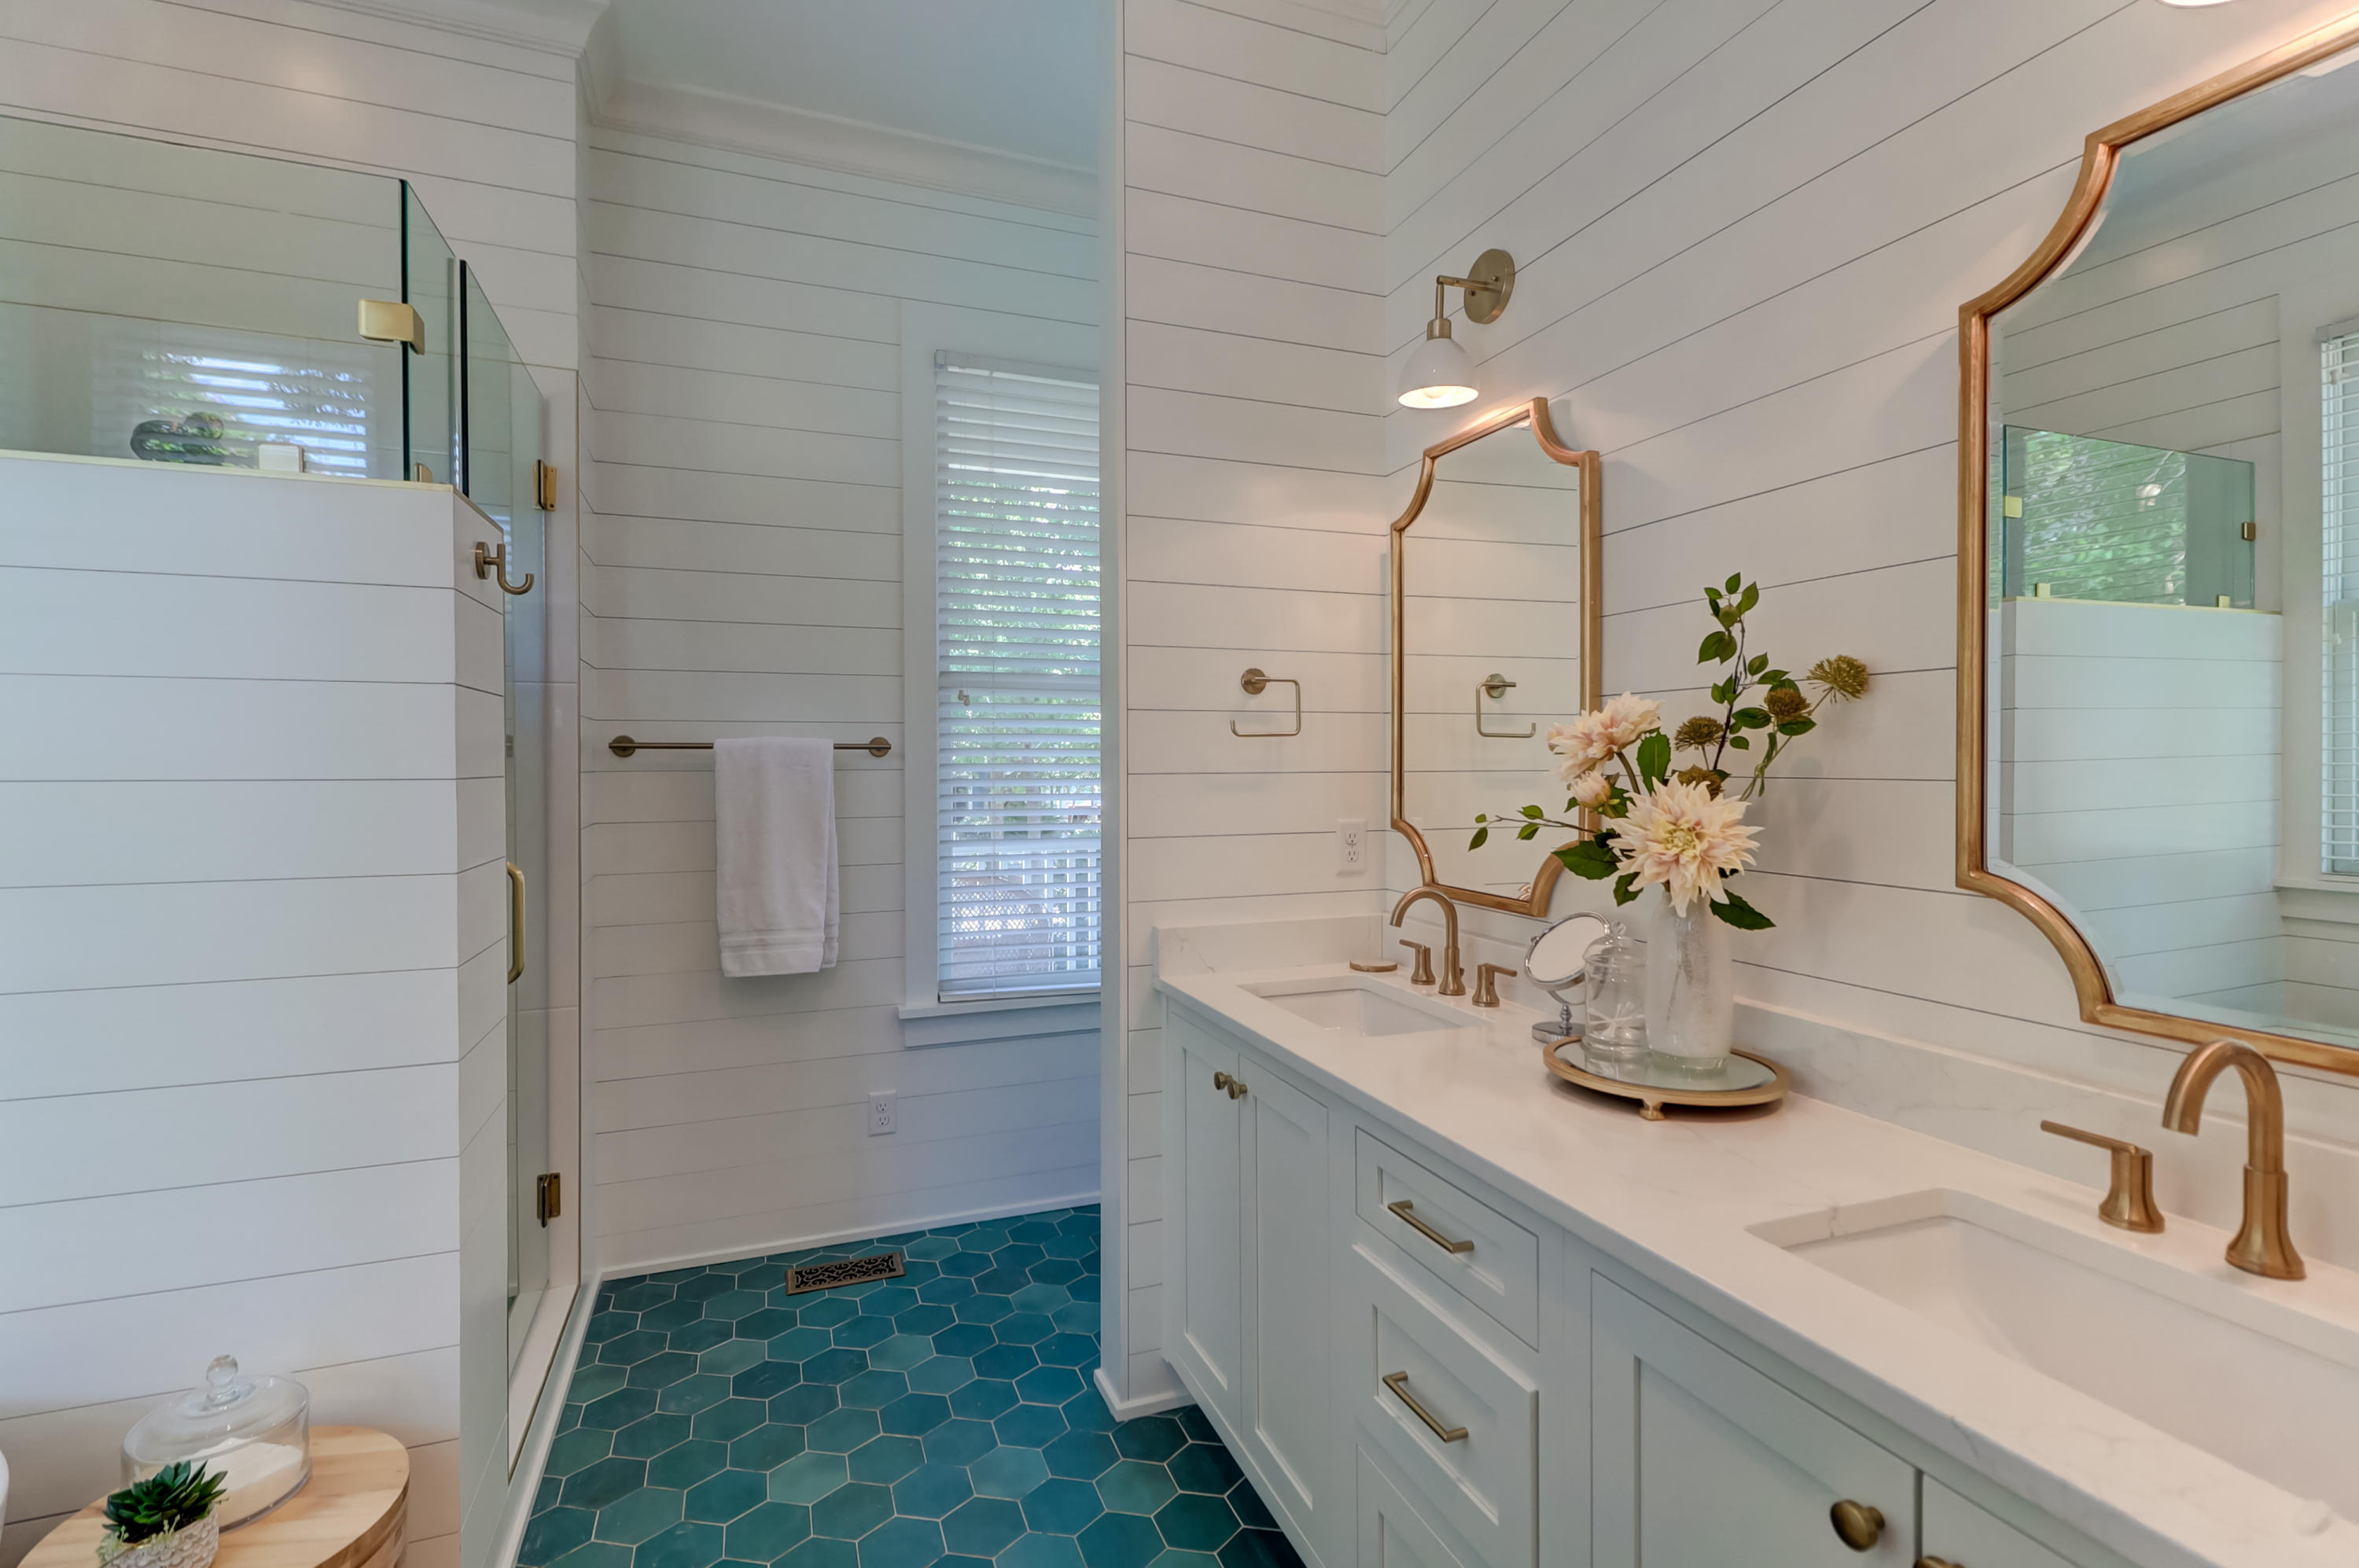 The Villages In St Johns Woods Homes For Sale - 5056 Coral Reef Dr, Johns Island, SC - 21